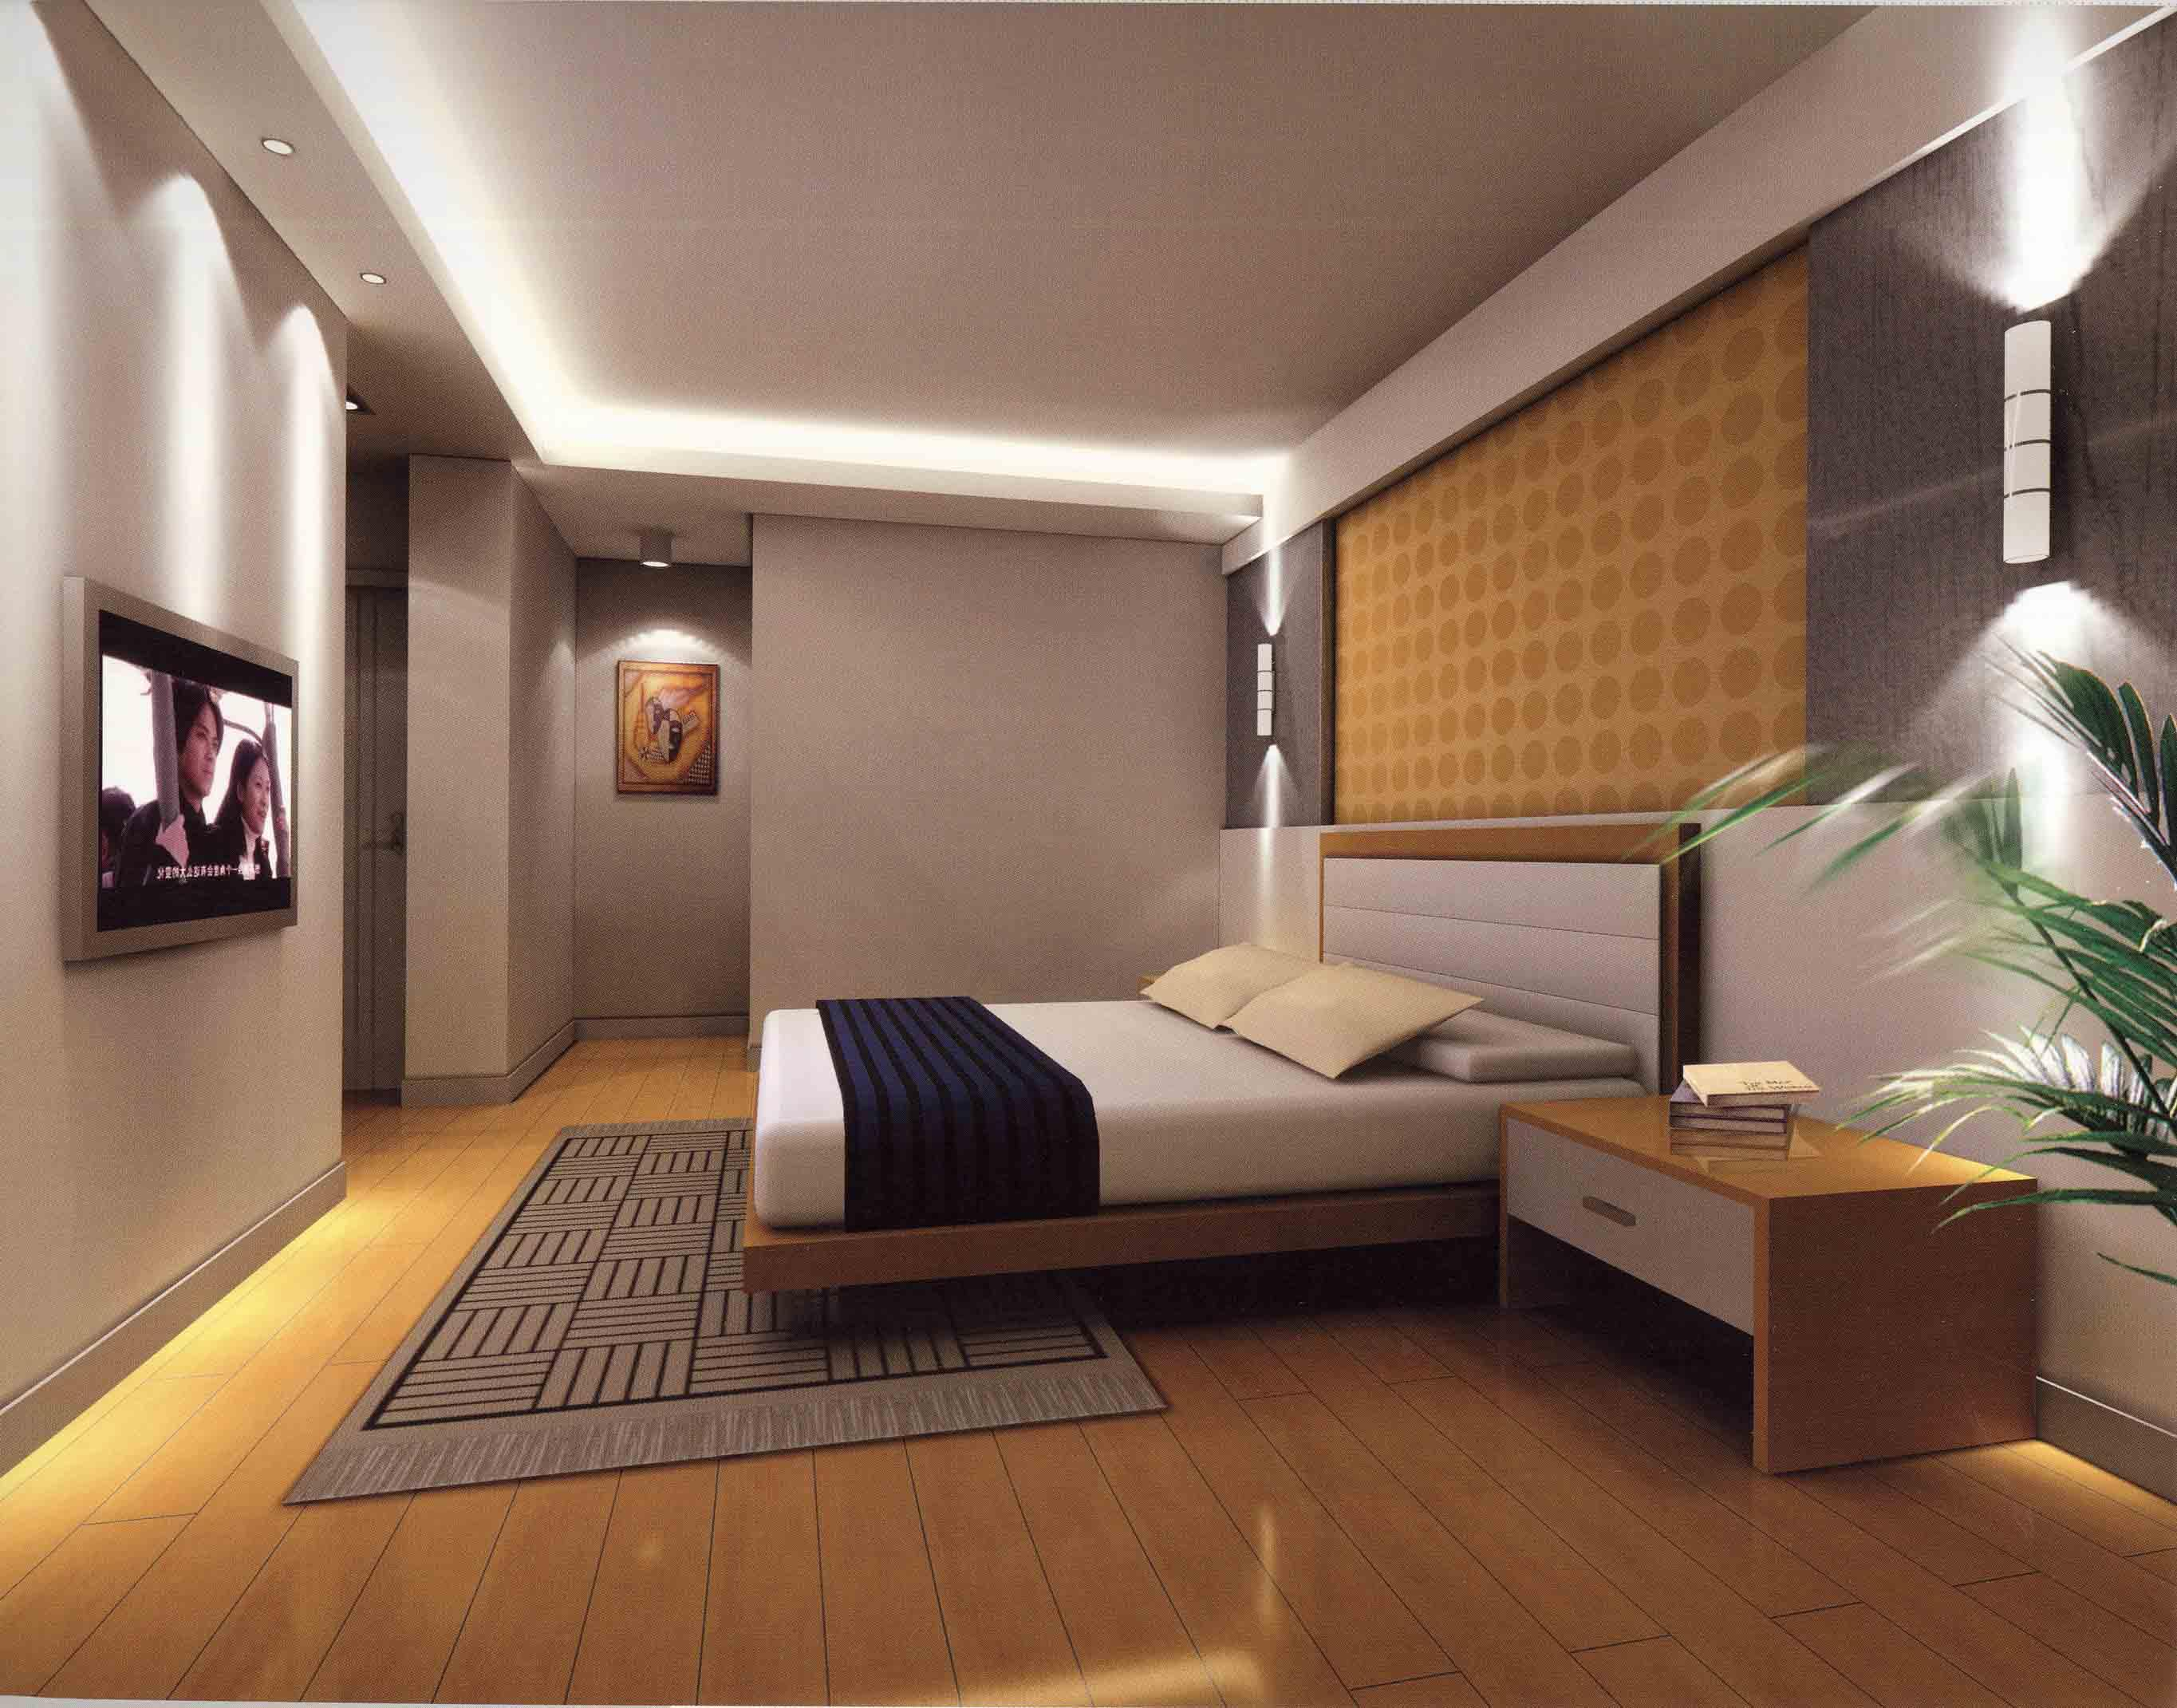 25 cool bedroom designs collection for 2015 bedroom designs